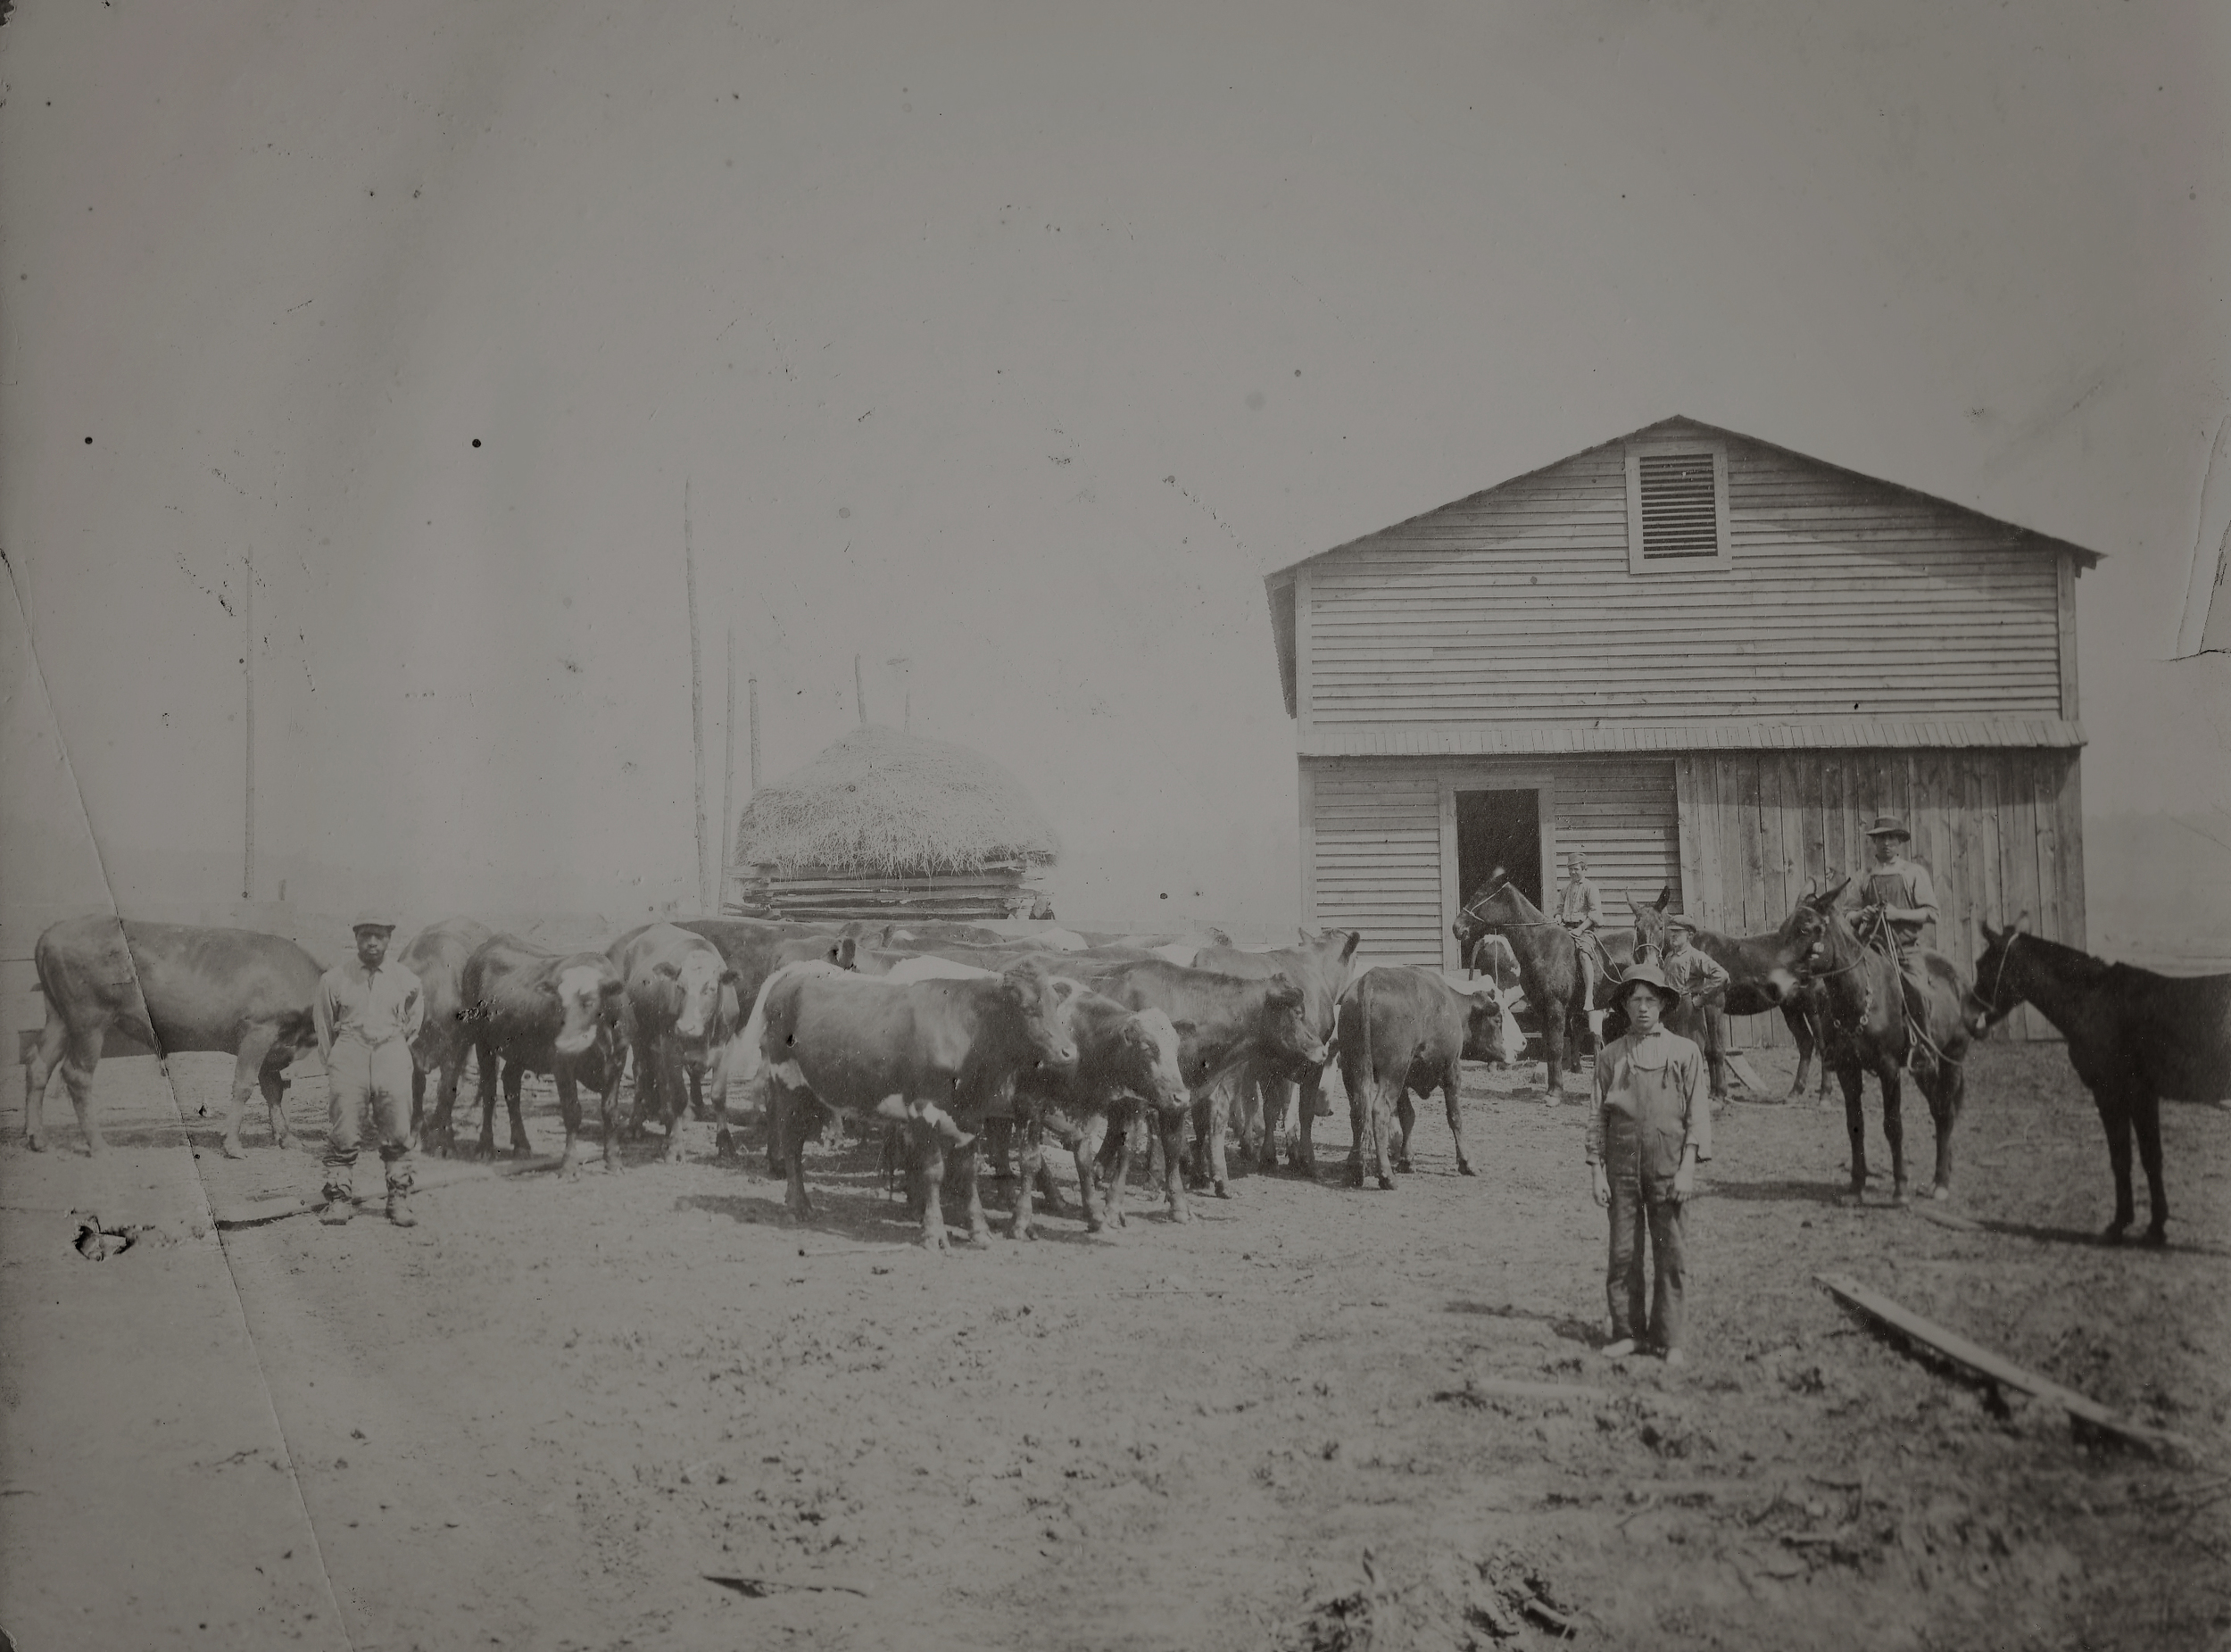 The Cattle Barn